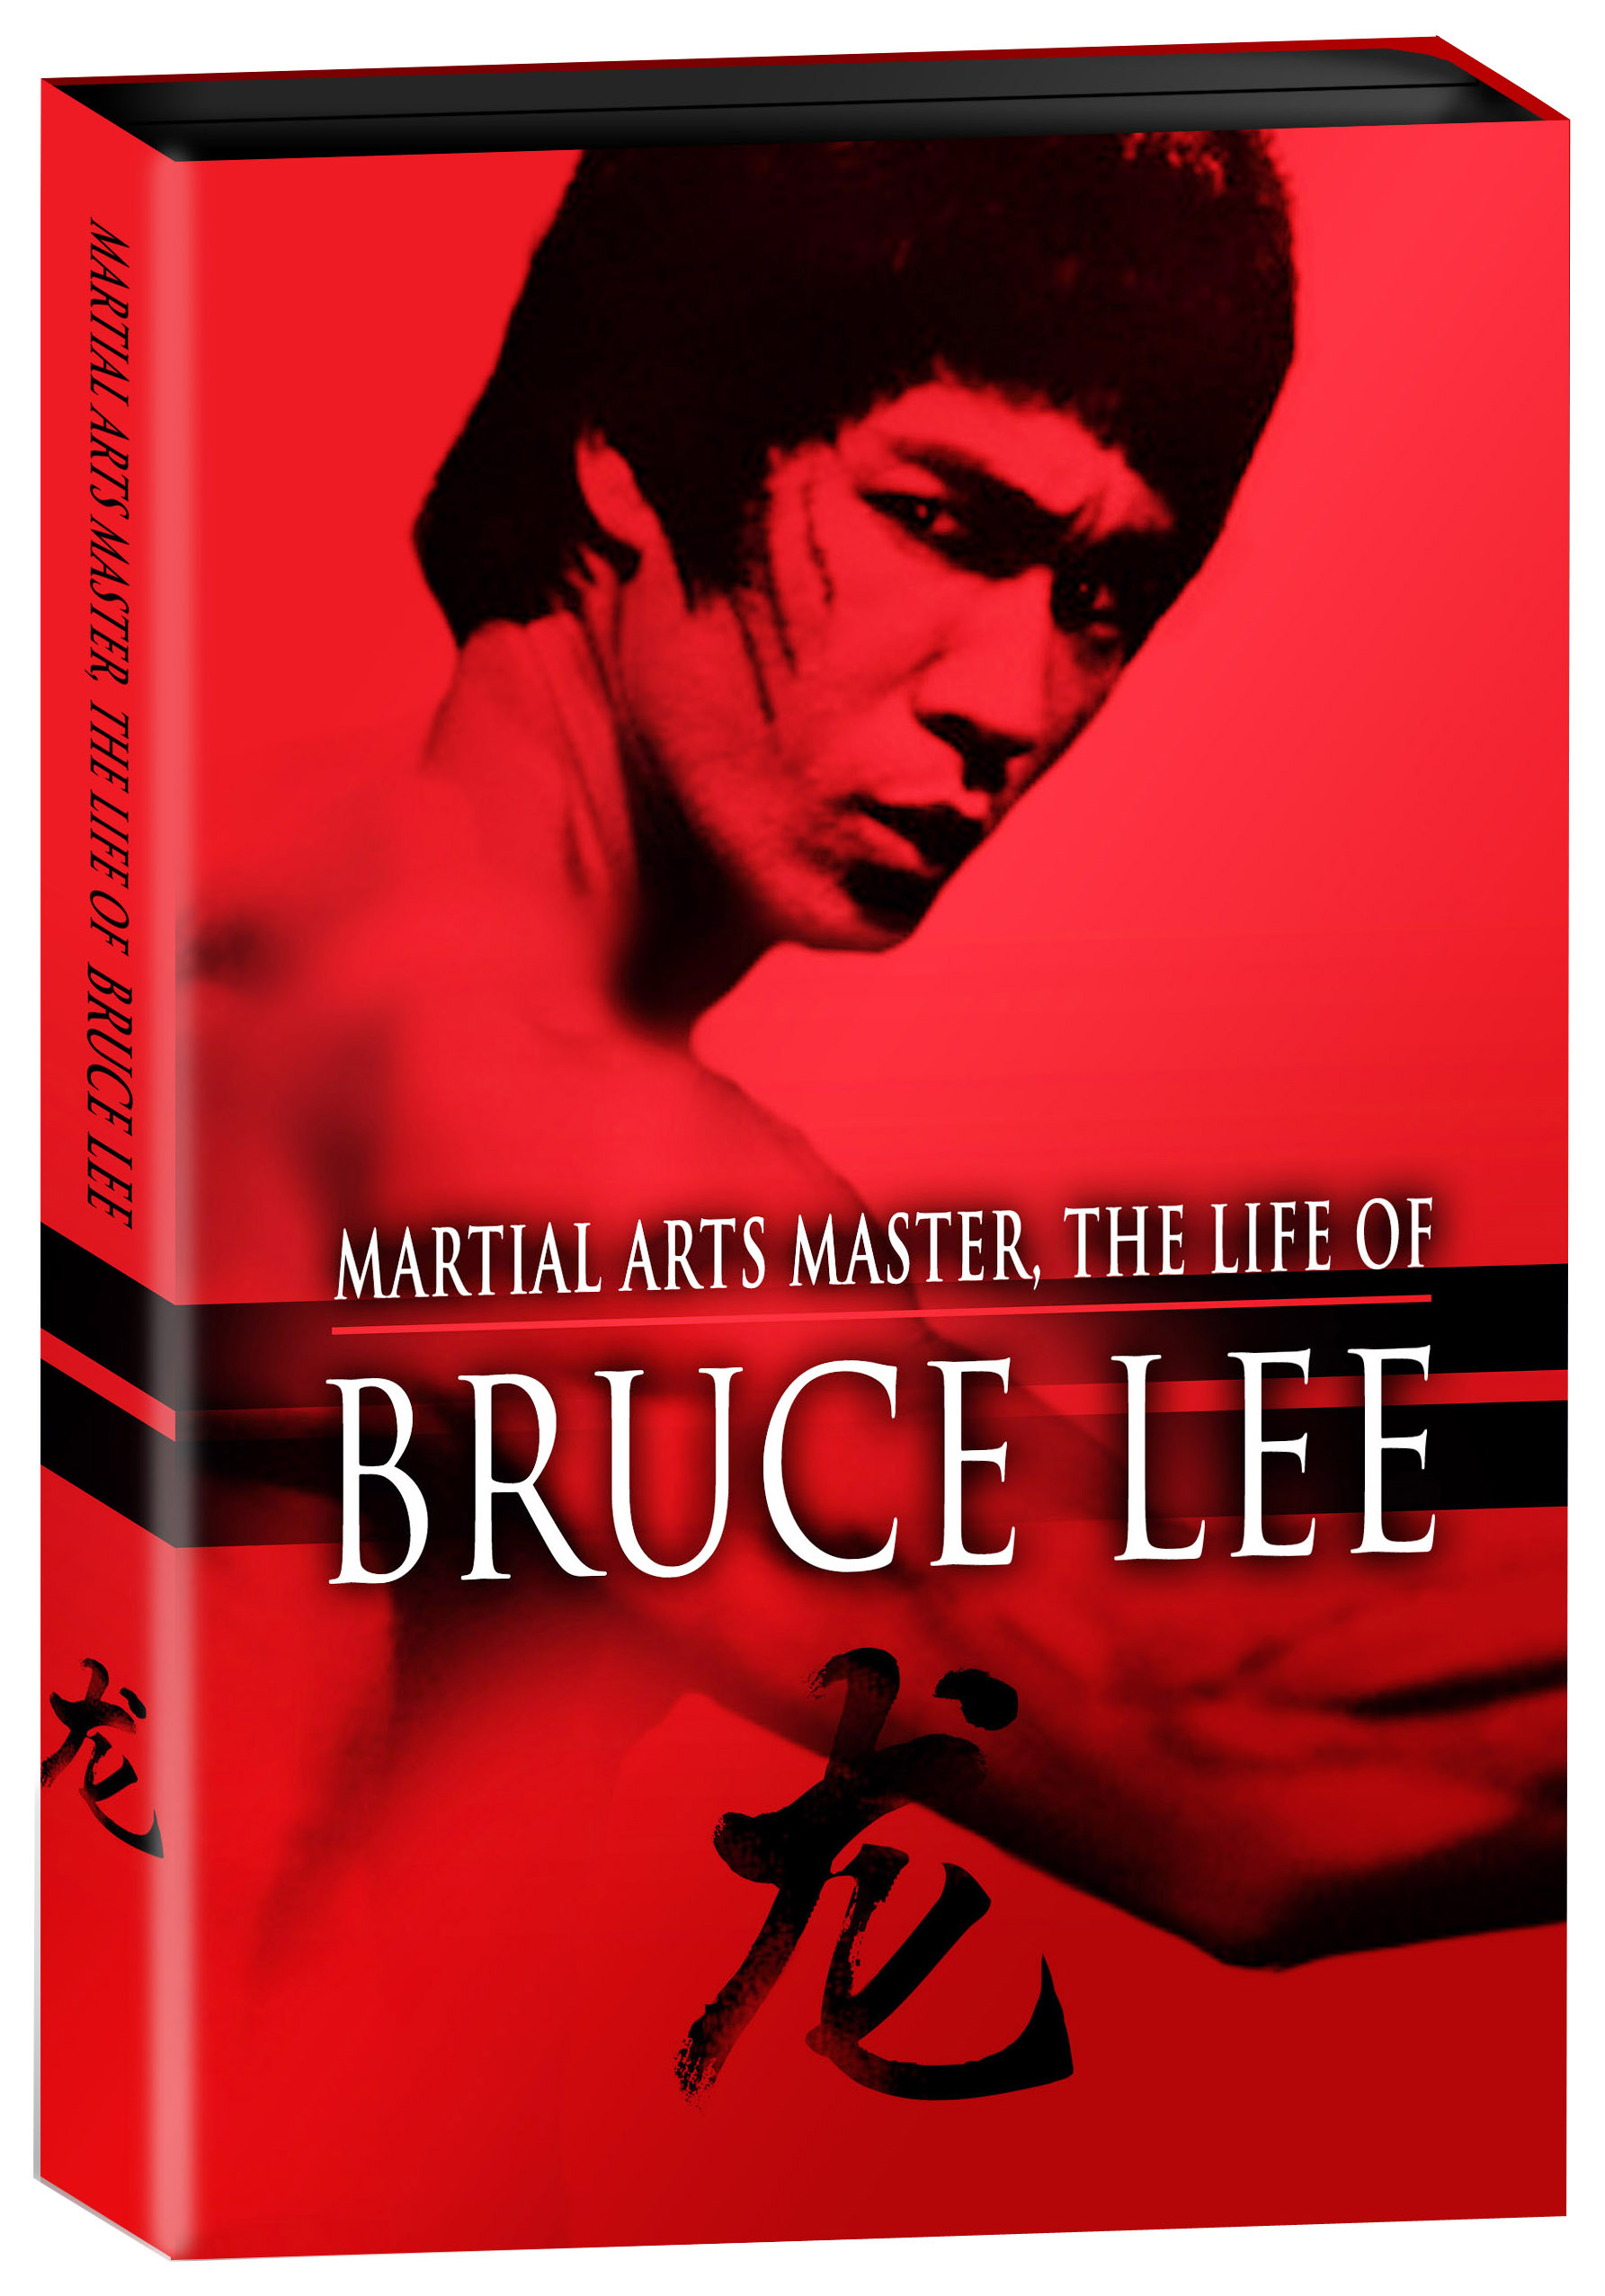 the life of bruce lee On biographycom, learn more about the life and career of trailblazing martial-arts legend bruce lee.